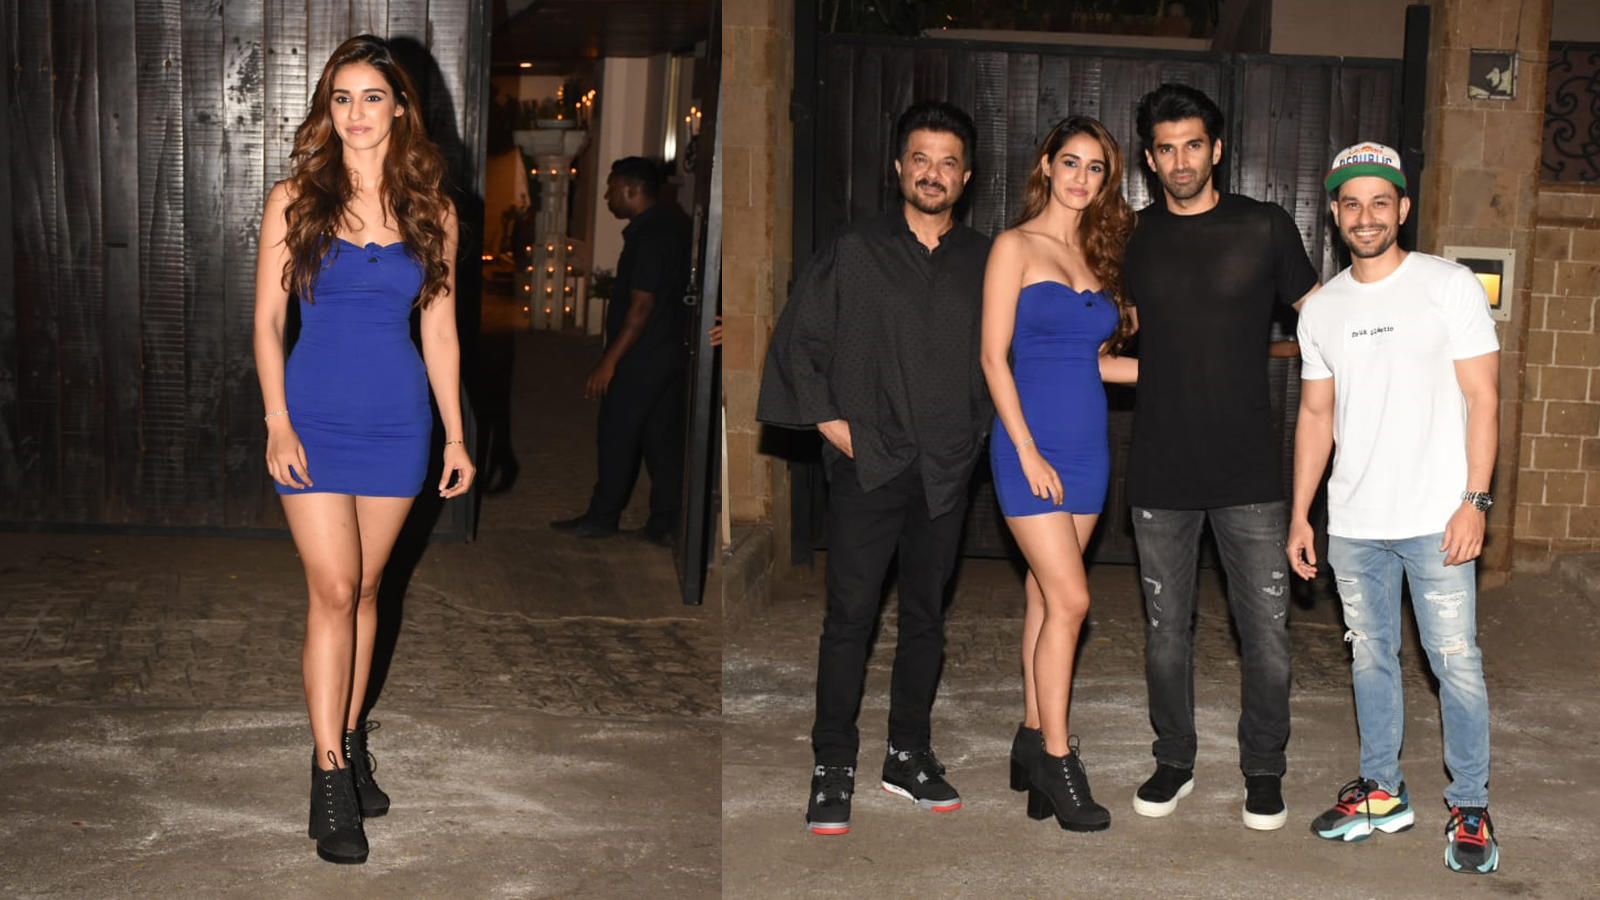 Disha Patani Parties The Night Away With Malang Team Shows Off Her Svelte Figure In Blue Tube Dress Hindi Movie News Bollywood Times Of India